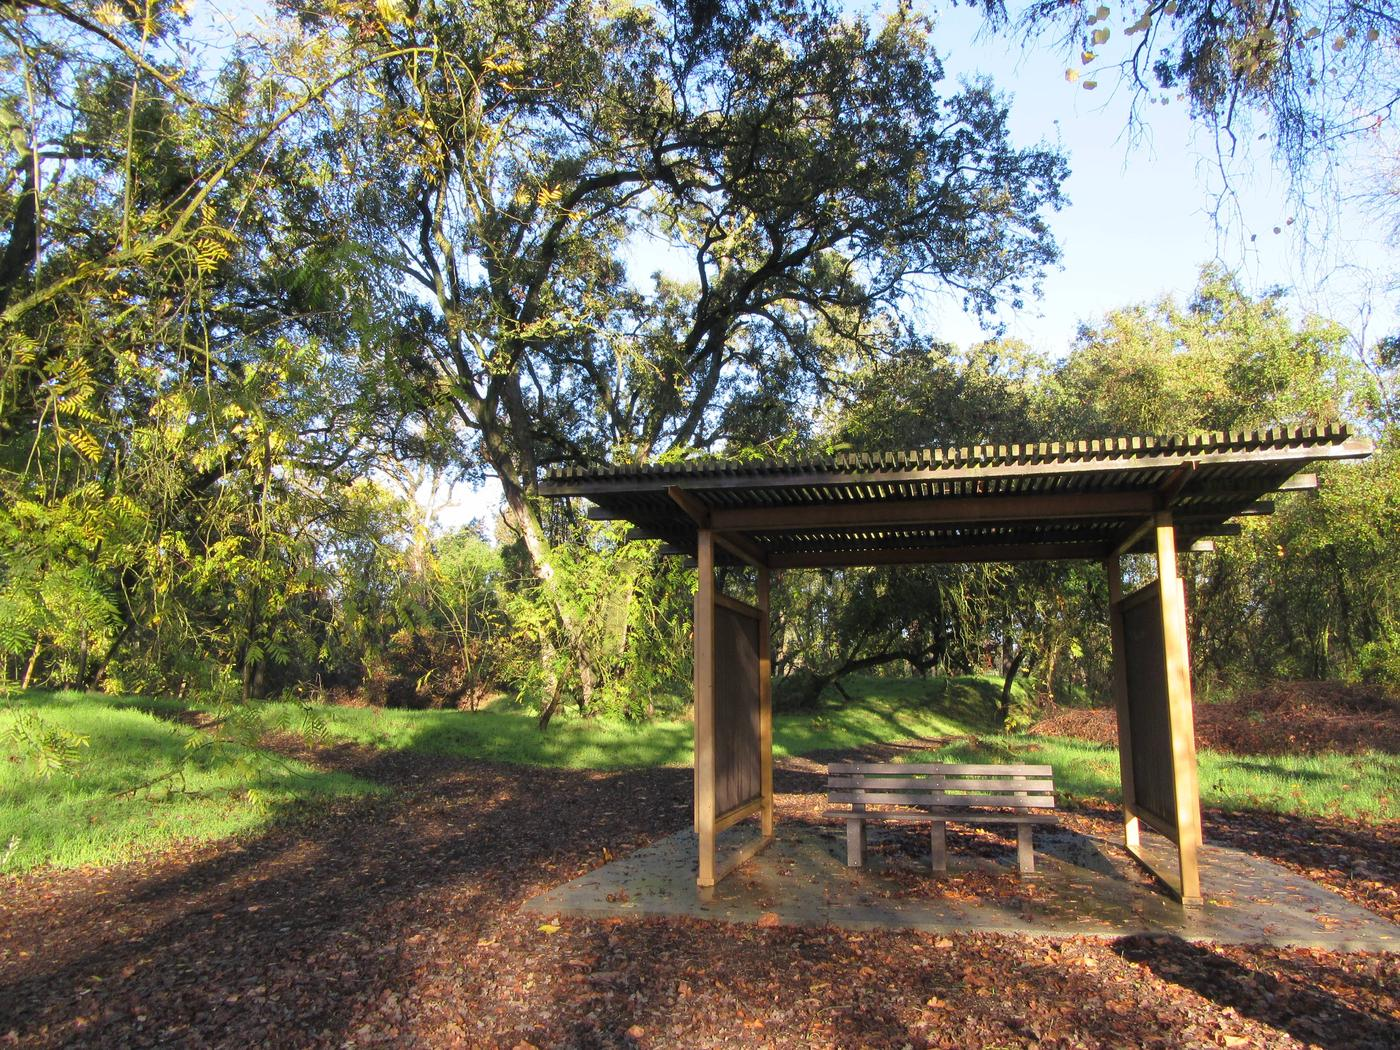 Valley Oak Recreation AreaRest area for viewing wildlife and scenery at the Valley Oak Recreation Area